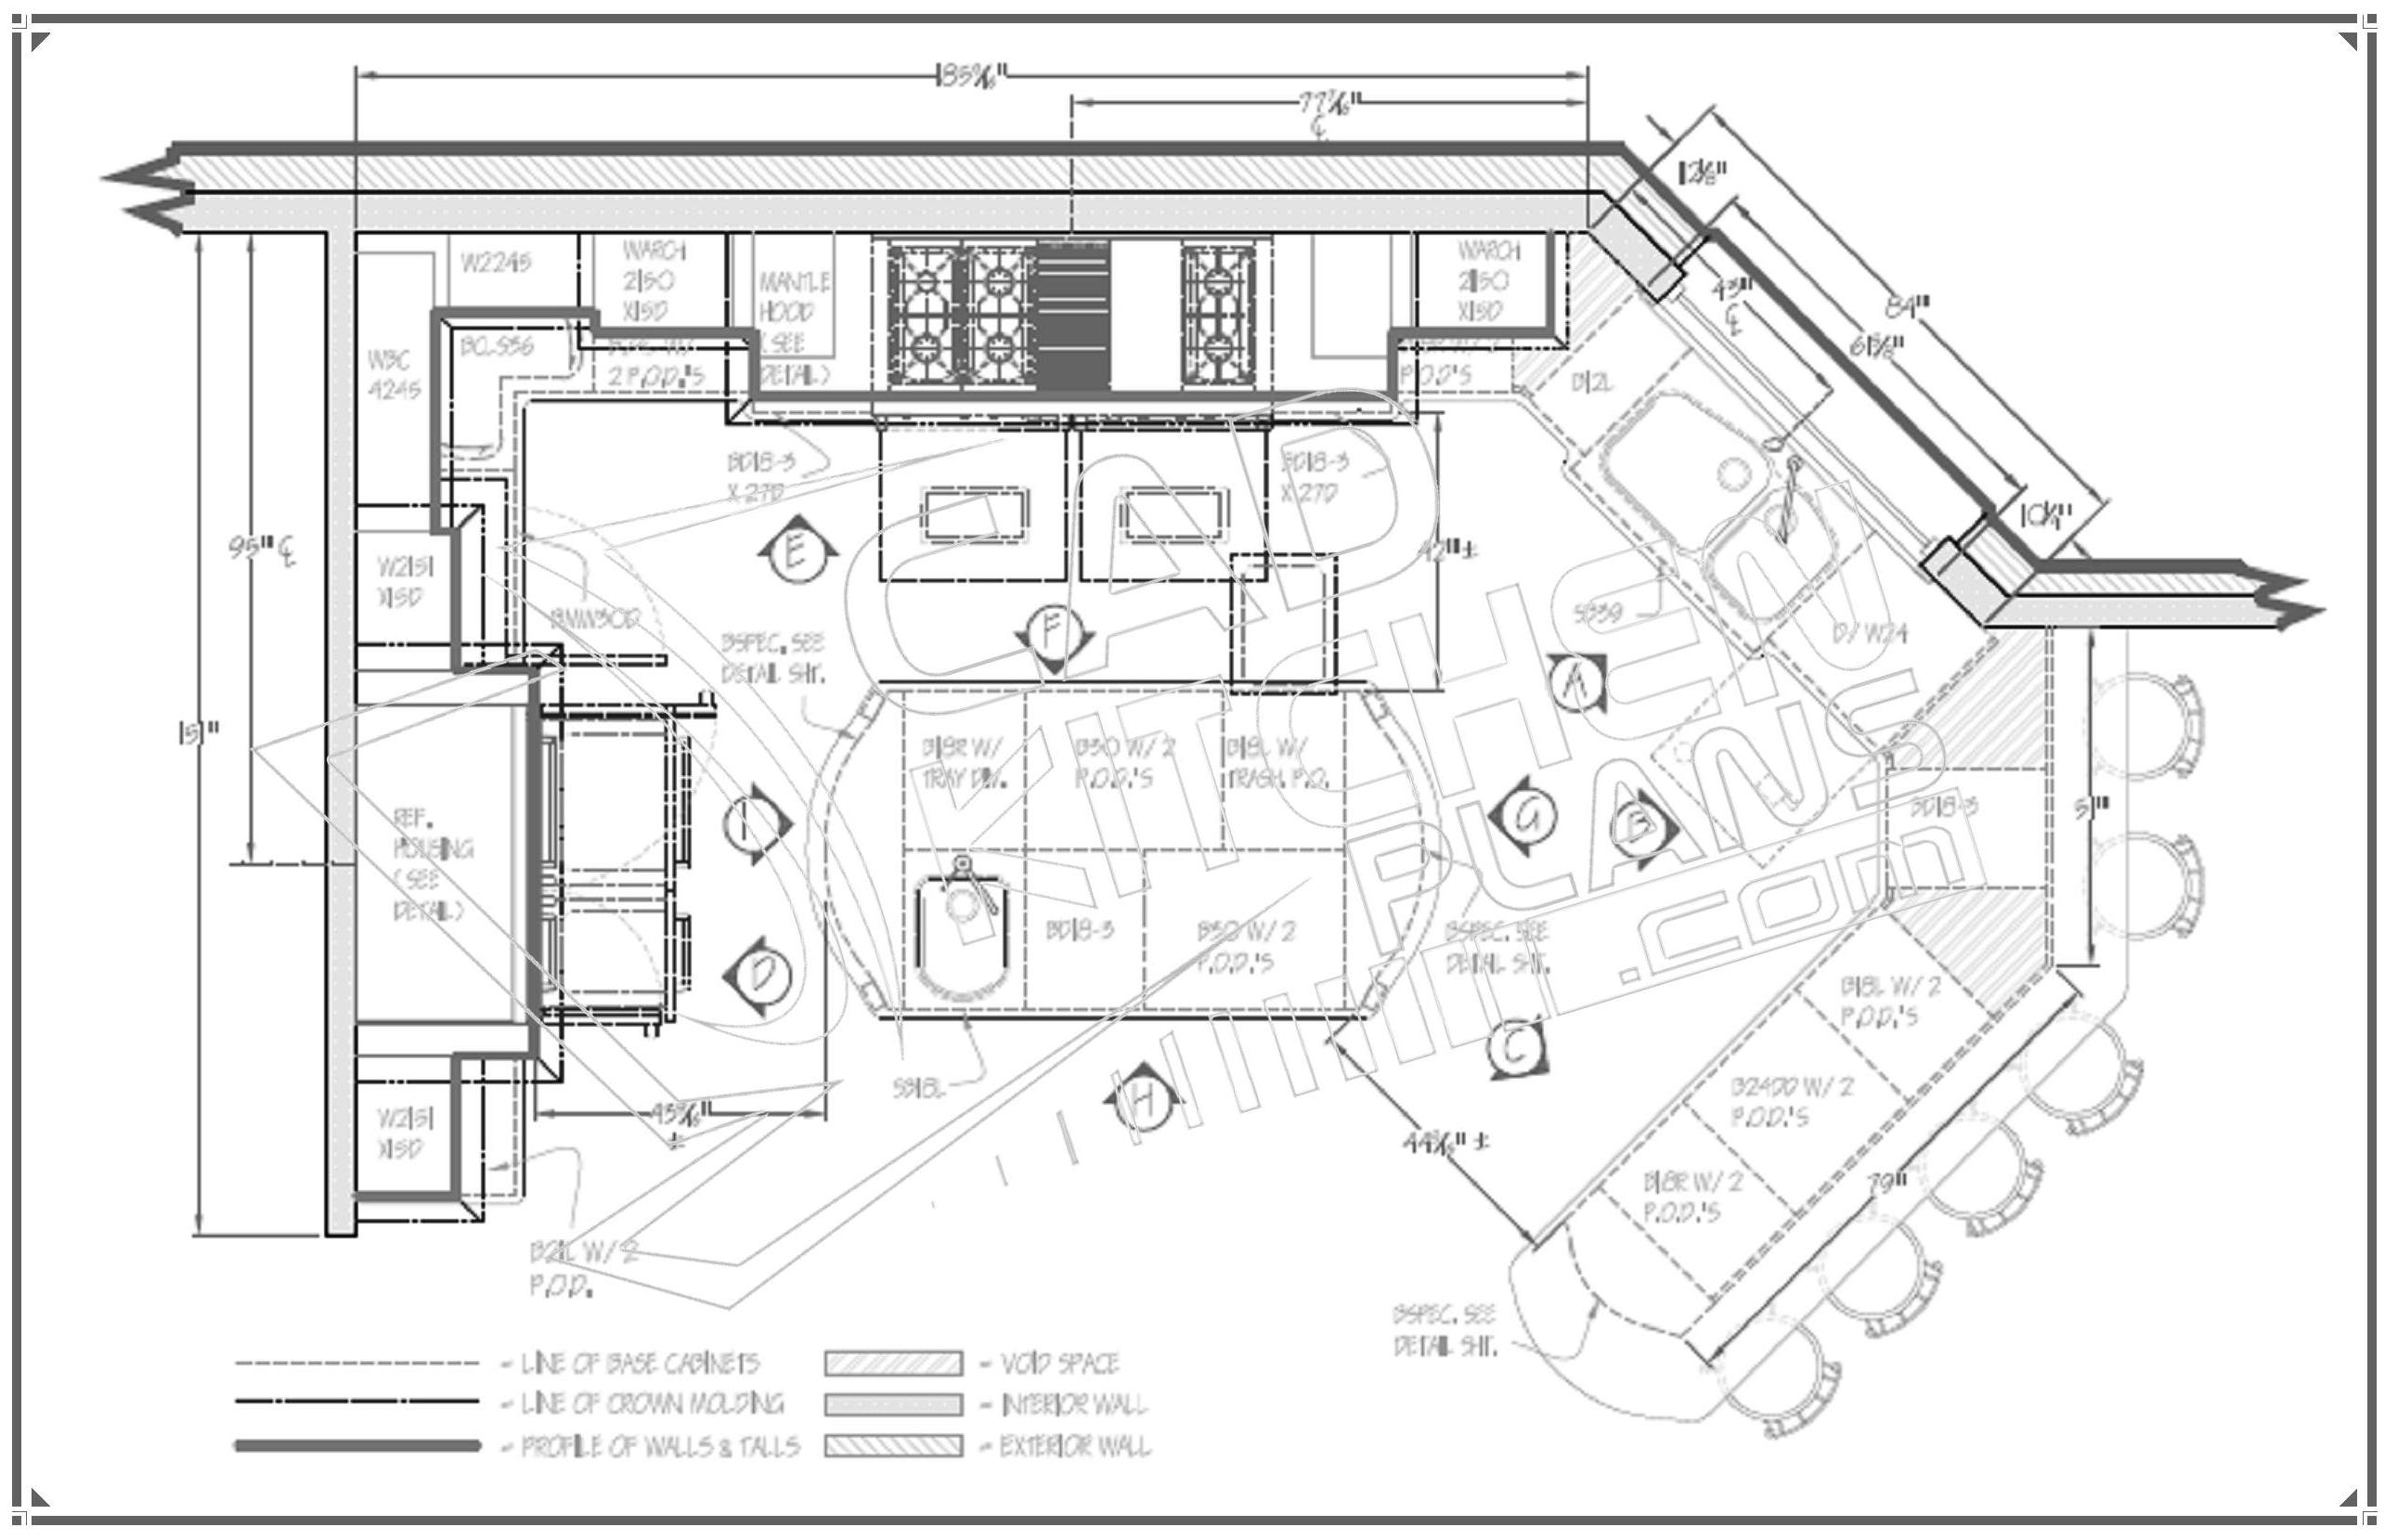 Restaurant Kitchen Layout Plans kitchen layout floor plans kitchen layouts design ideas kitchen